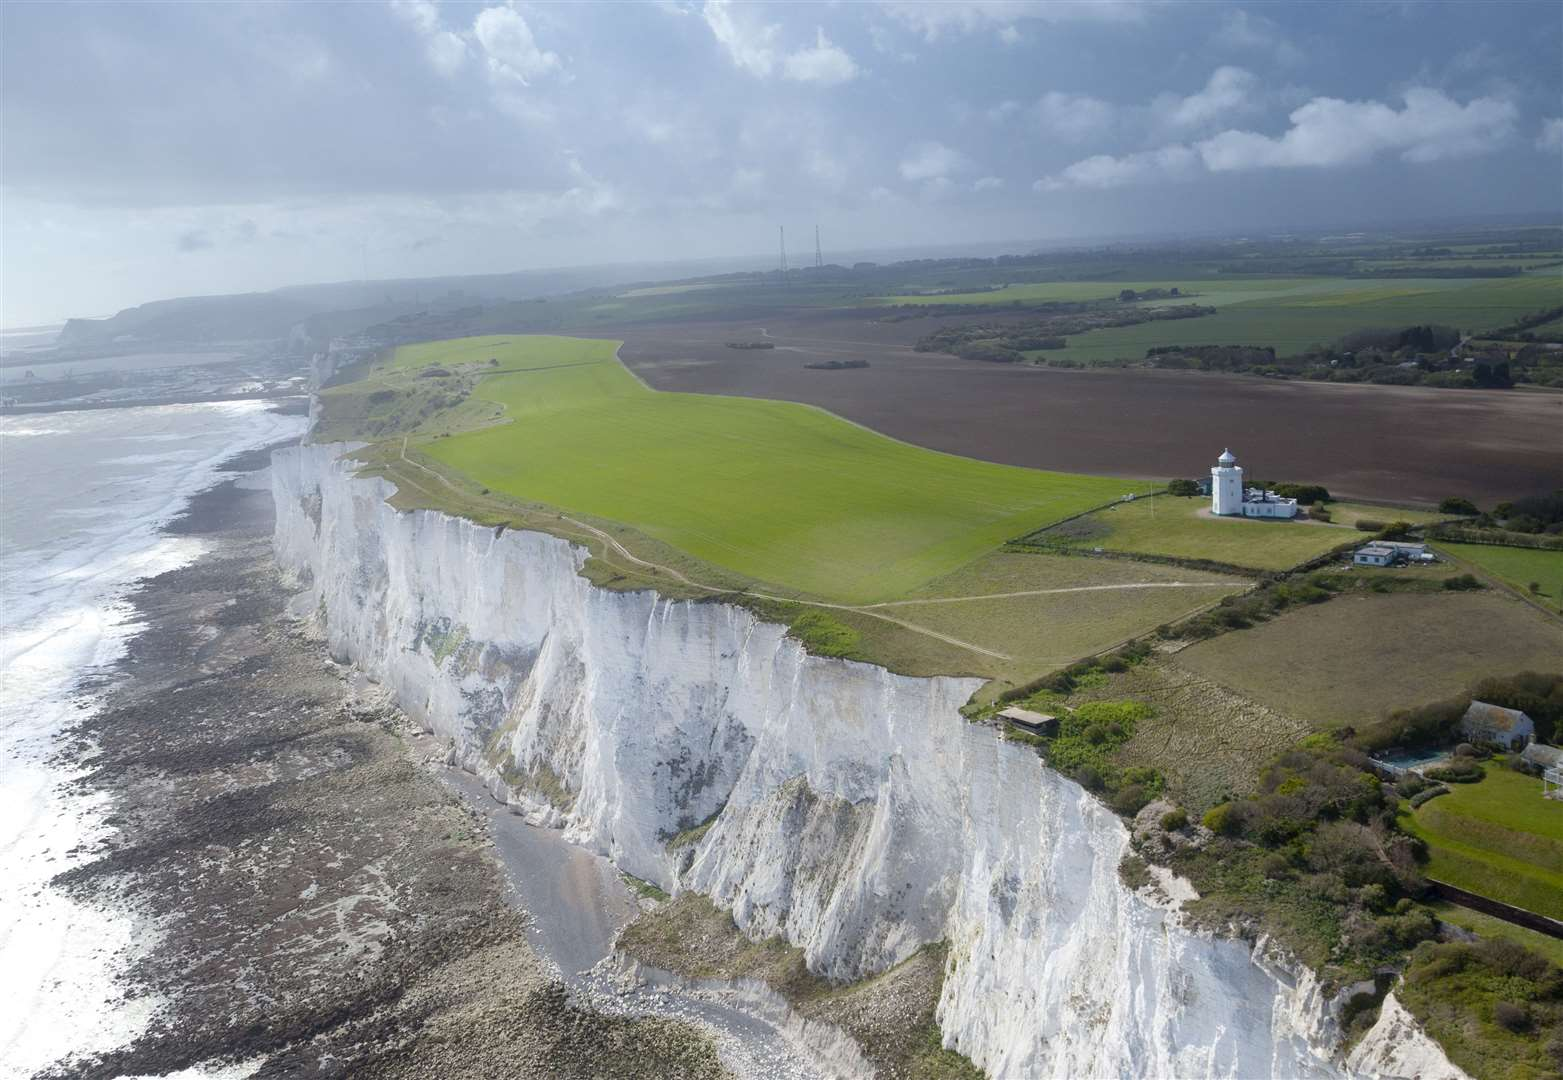 The planes will fly above the White Cliffs of Dover